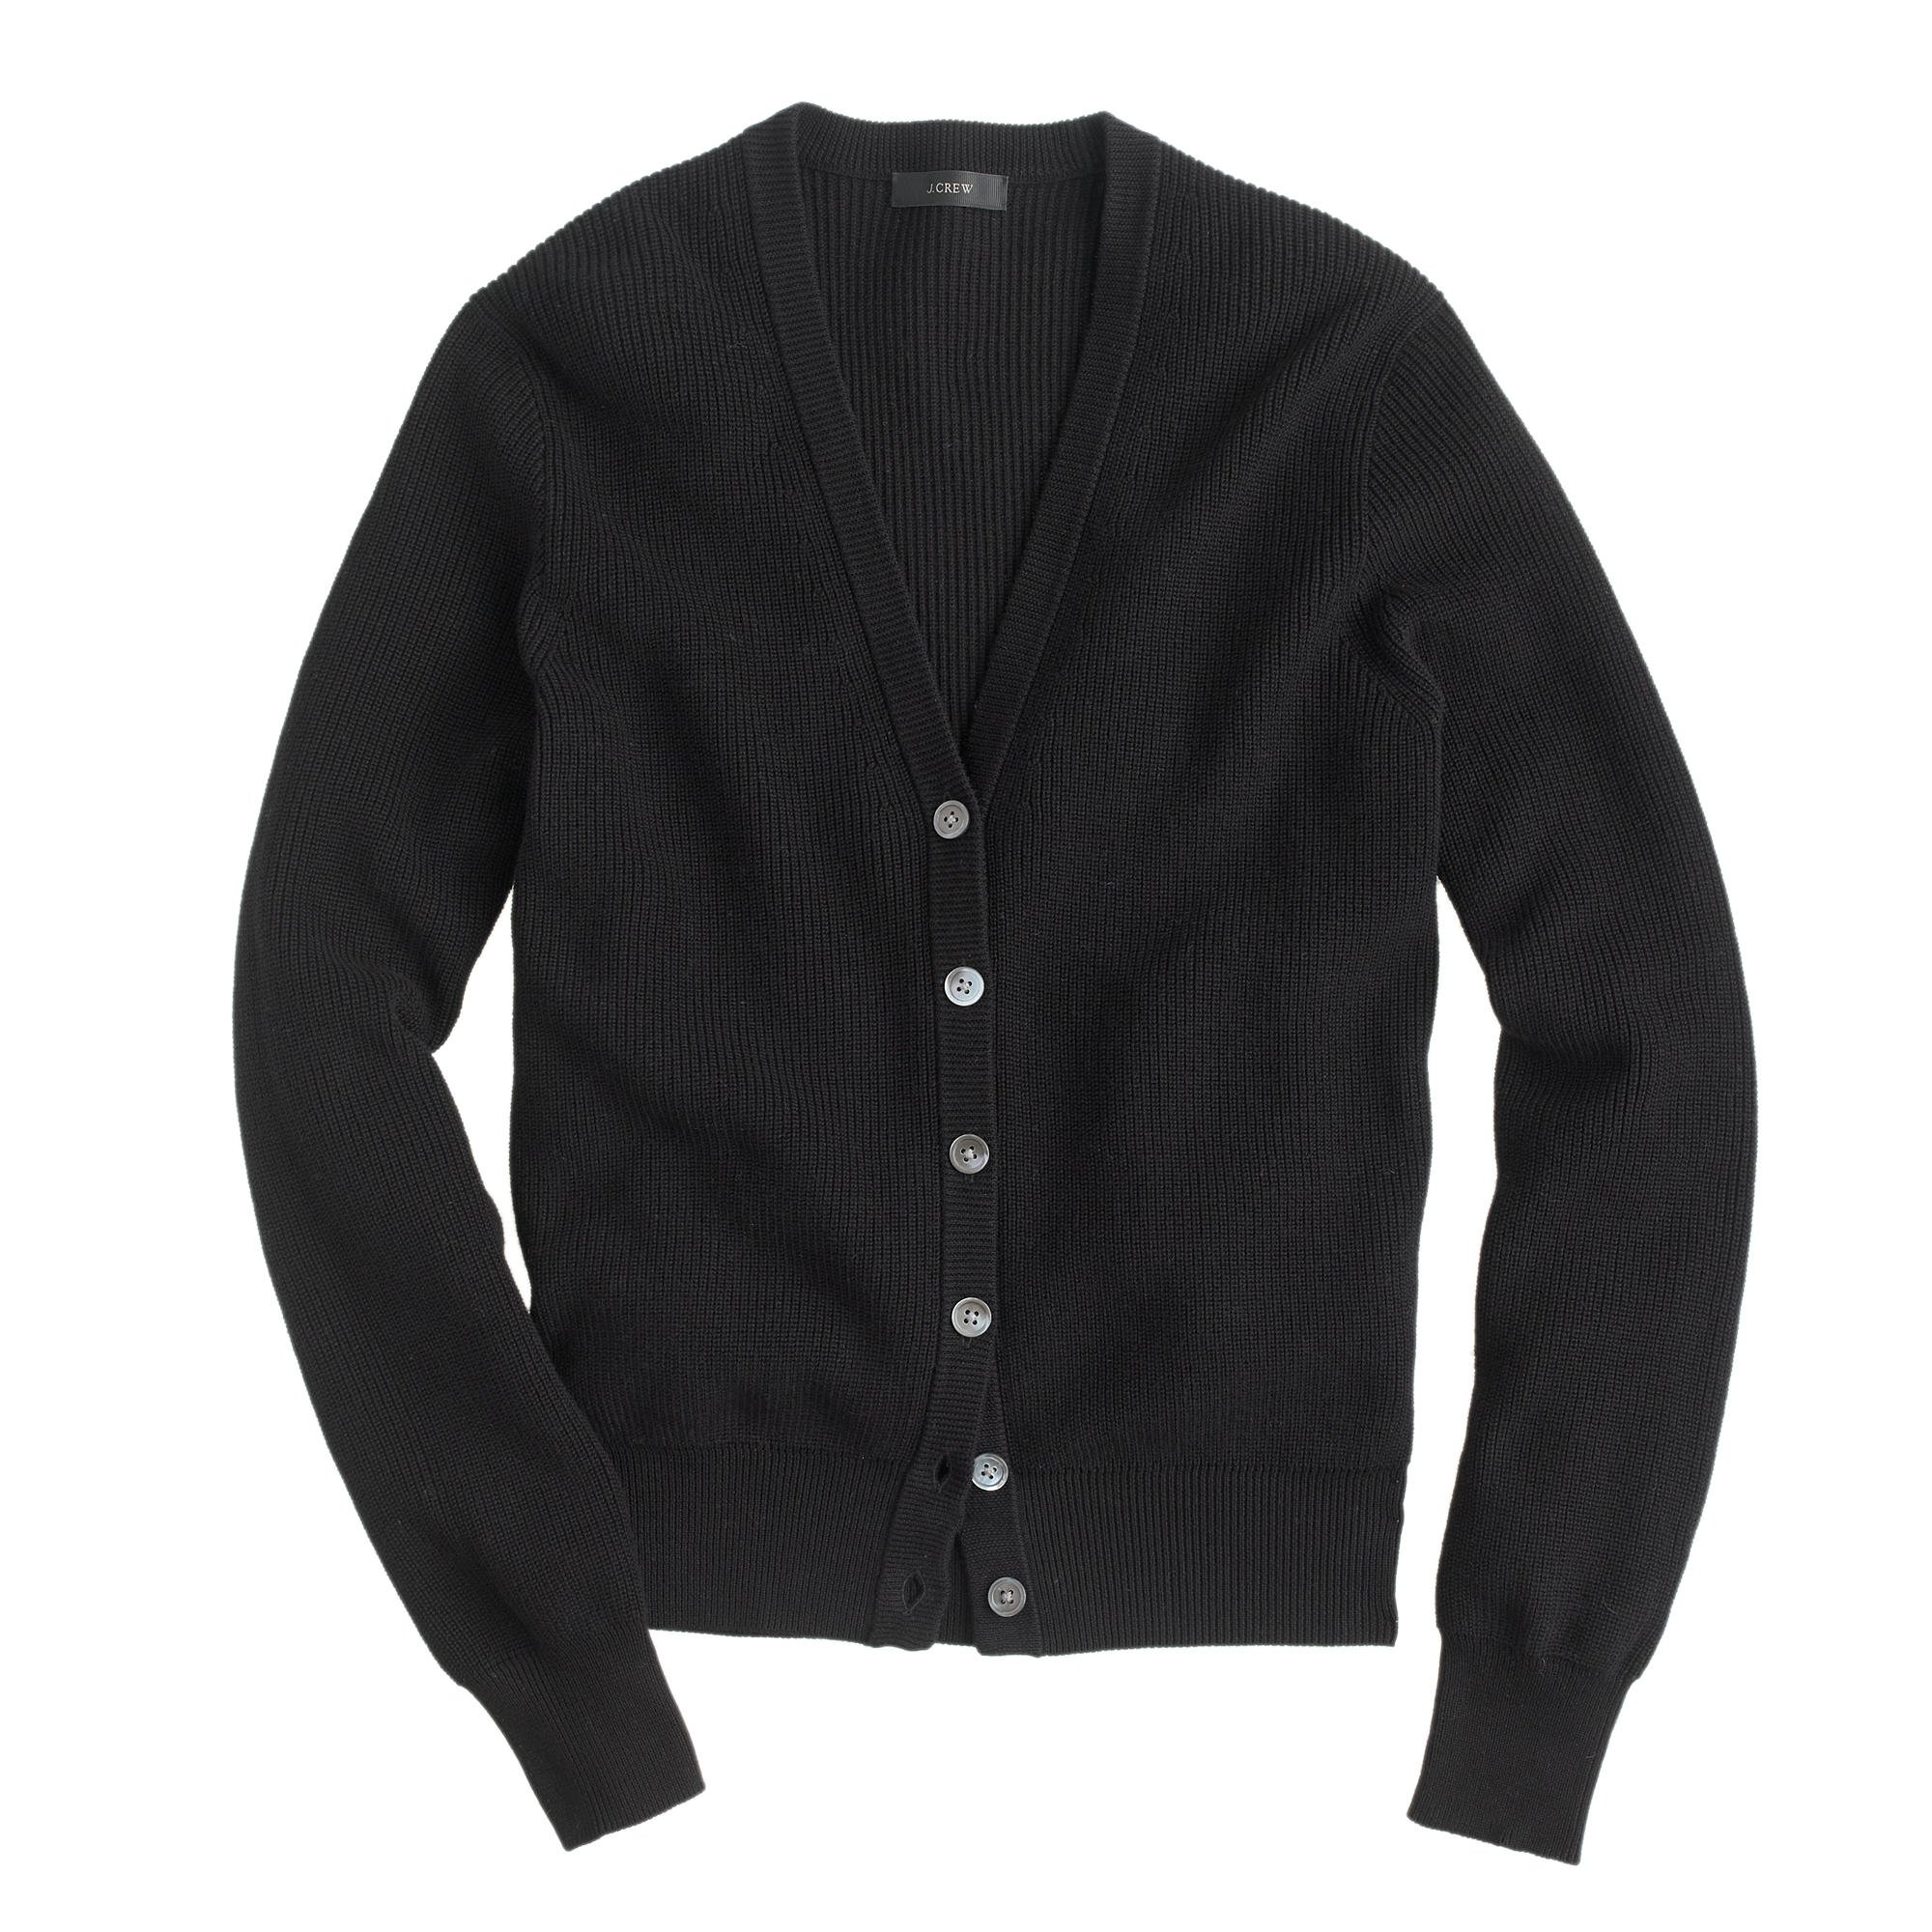 J.crew Ribbed Cotton Cardigan Sweater in Black | Lyst